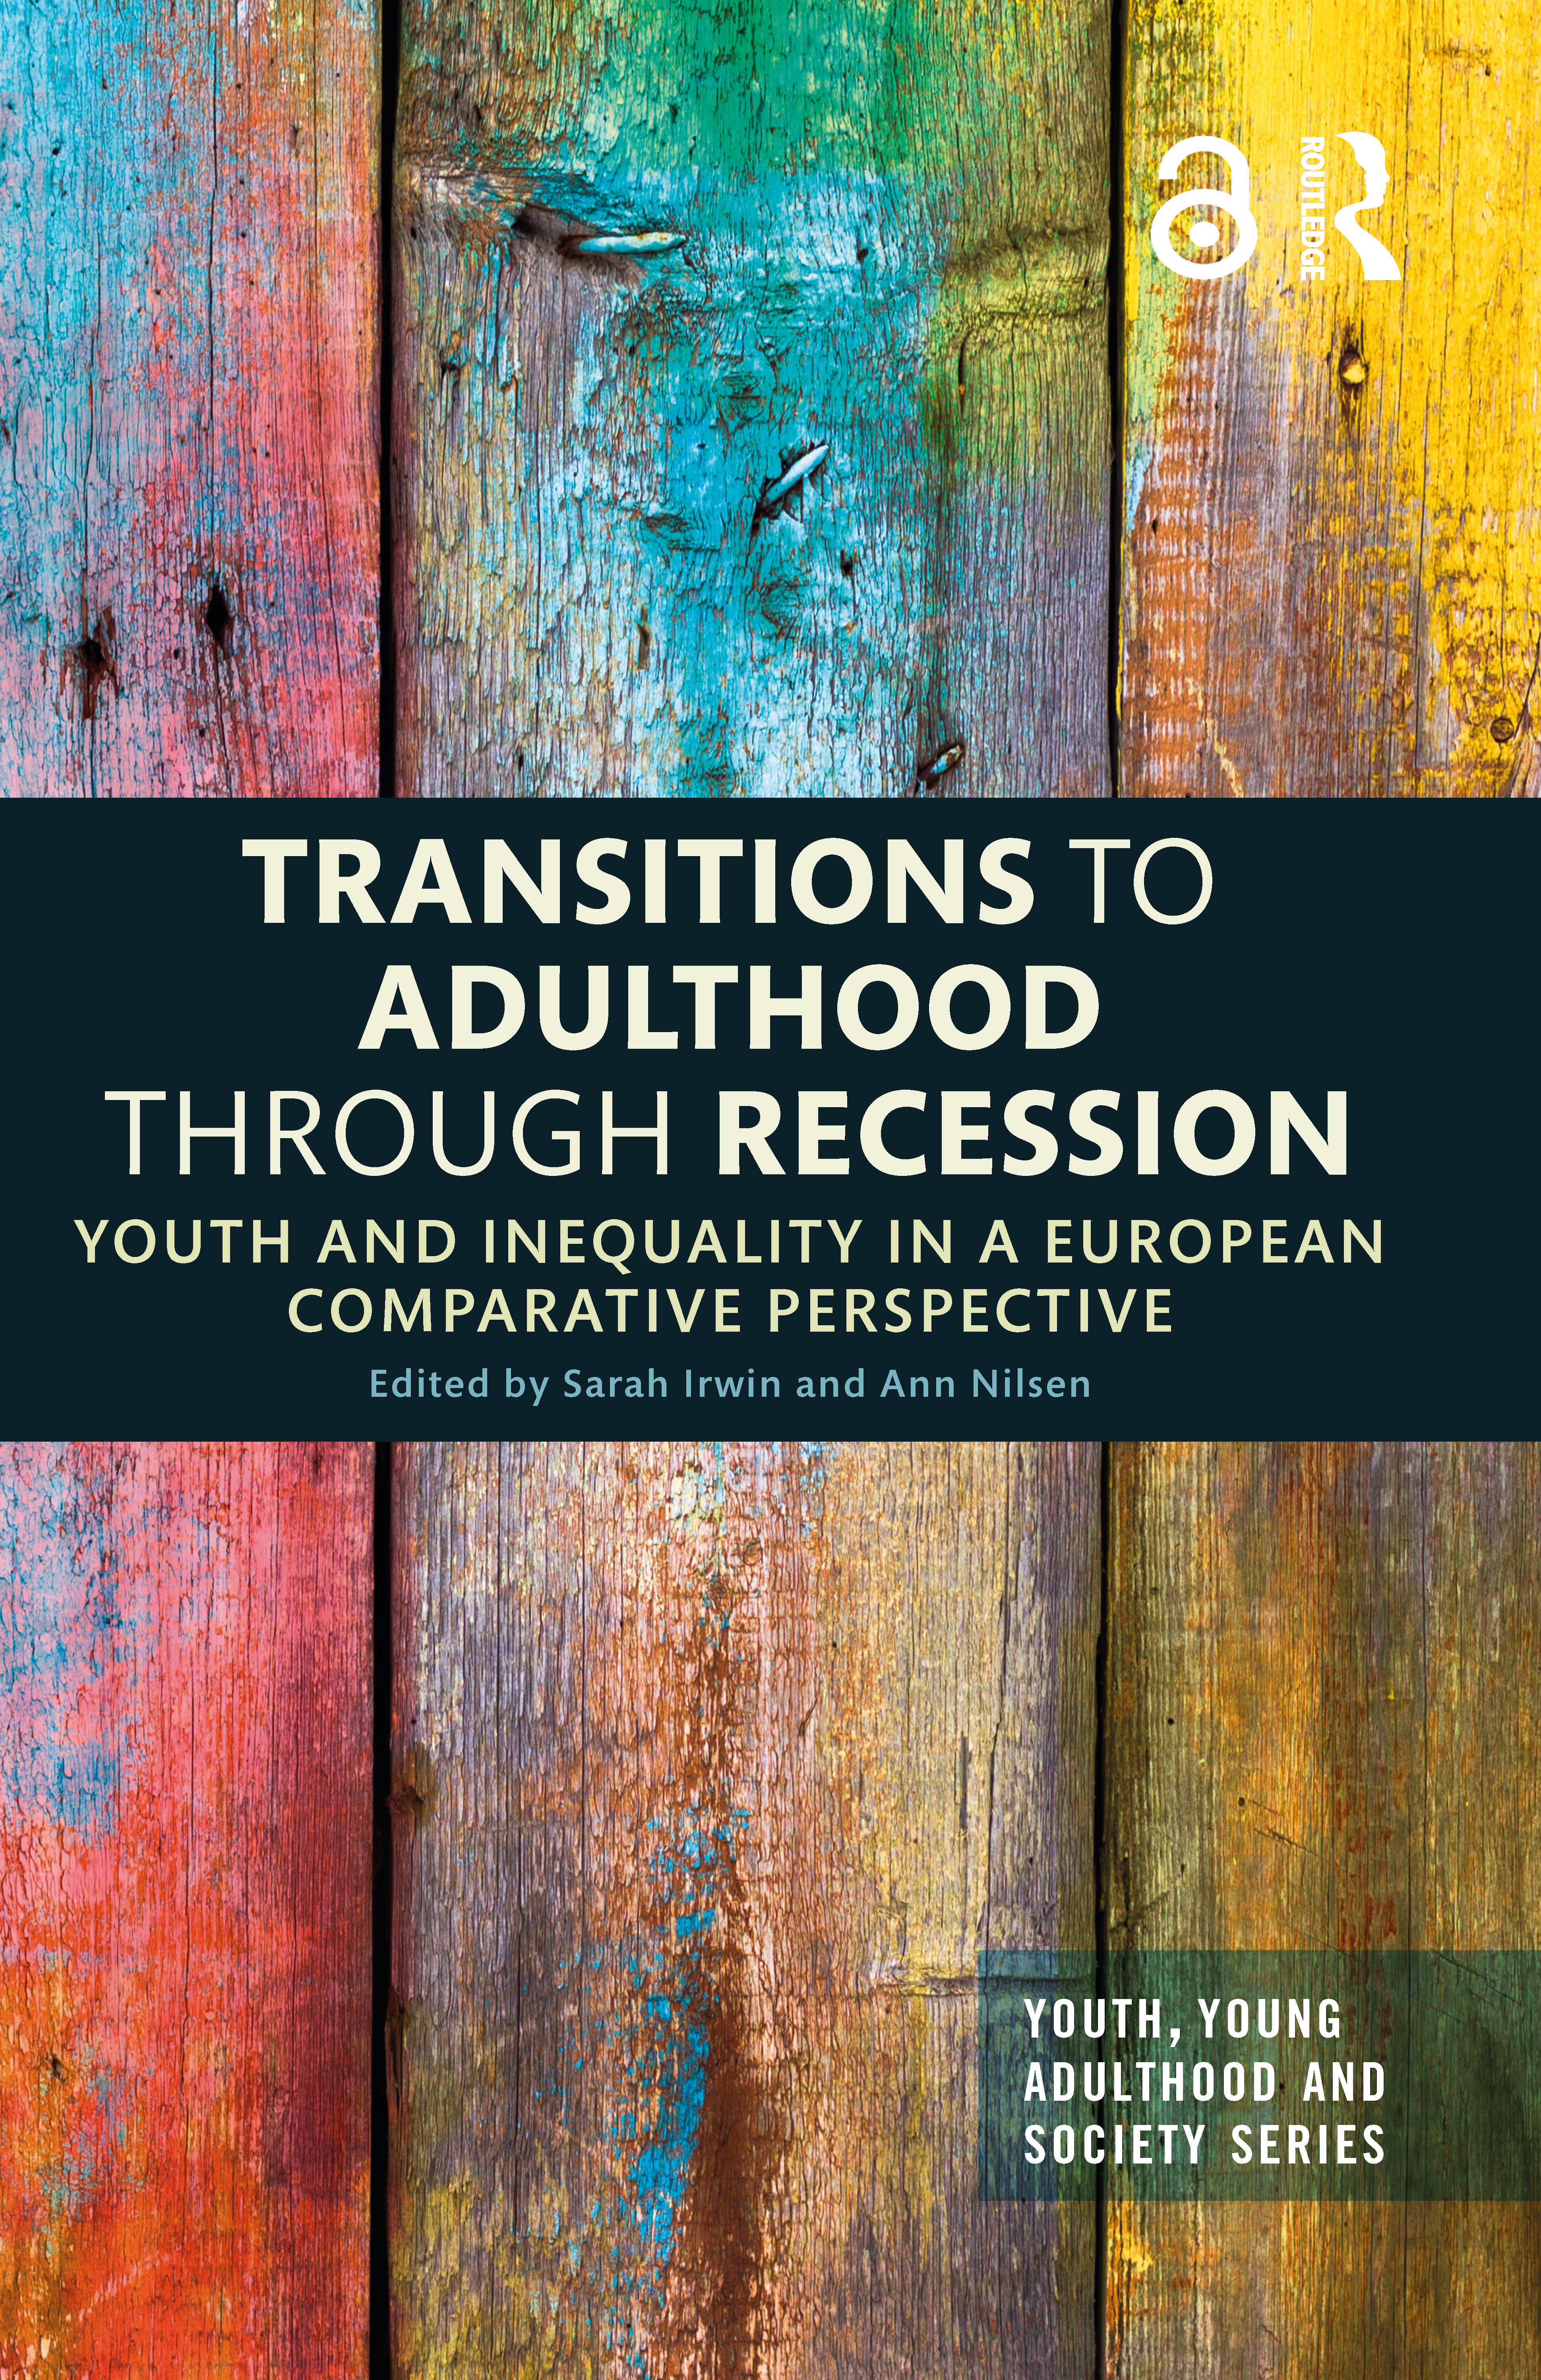 Transitions to Adulthood Through Recession: Youth and Inequality in a European Comparative Perspective book cover